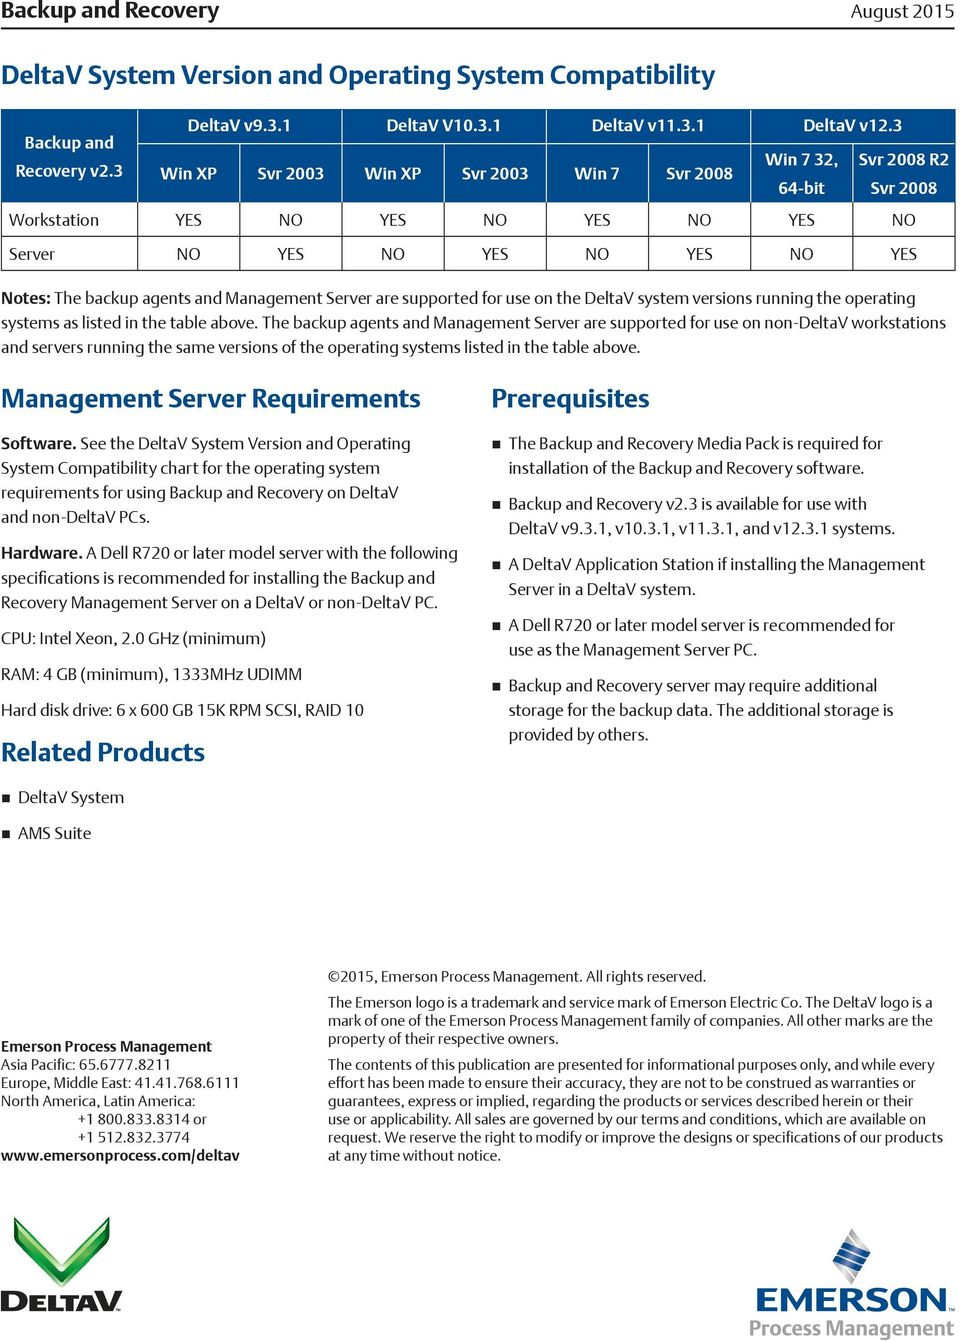 Management Server are supported for use on the DeltaV system versions running the operating systems as listed in the table above.